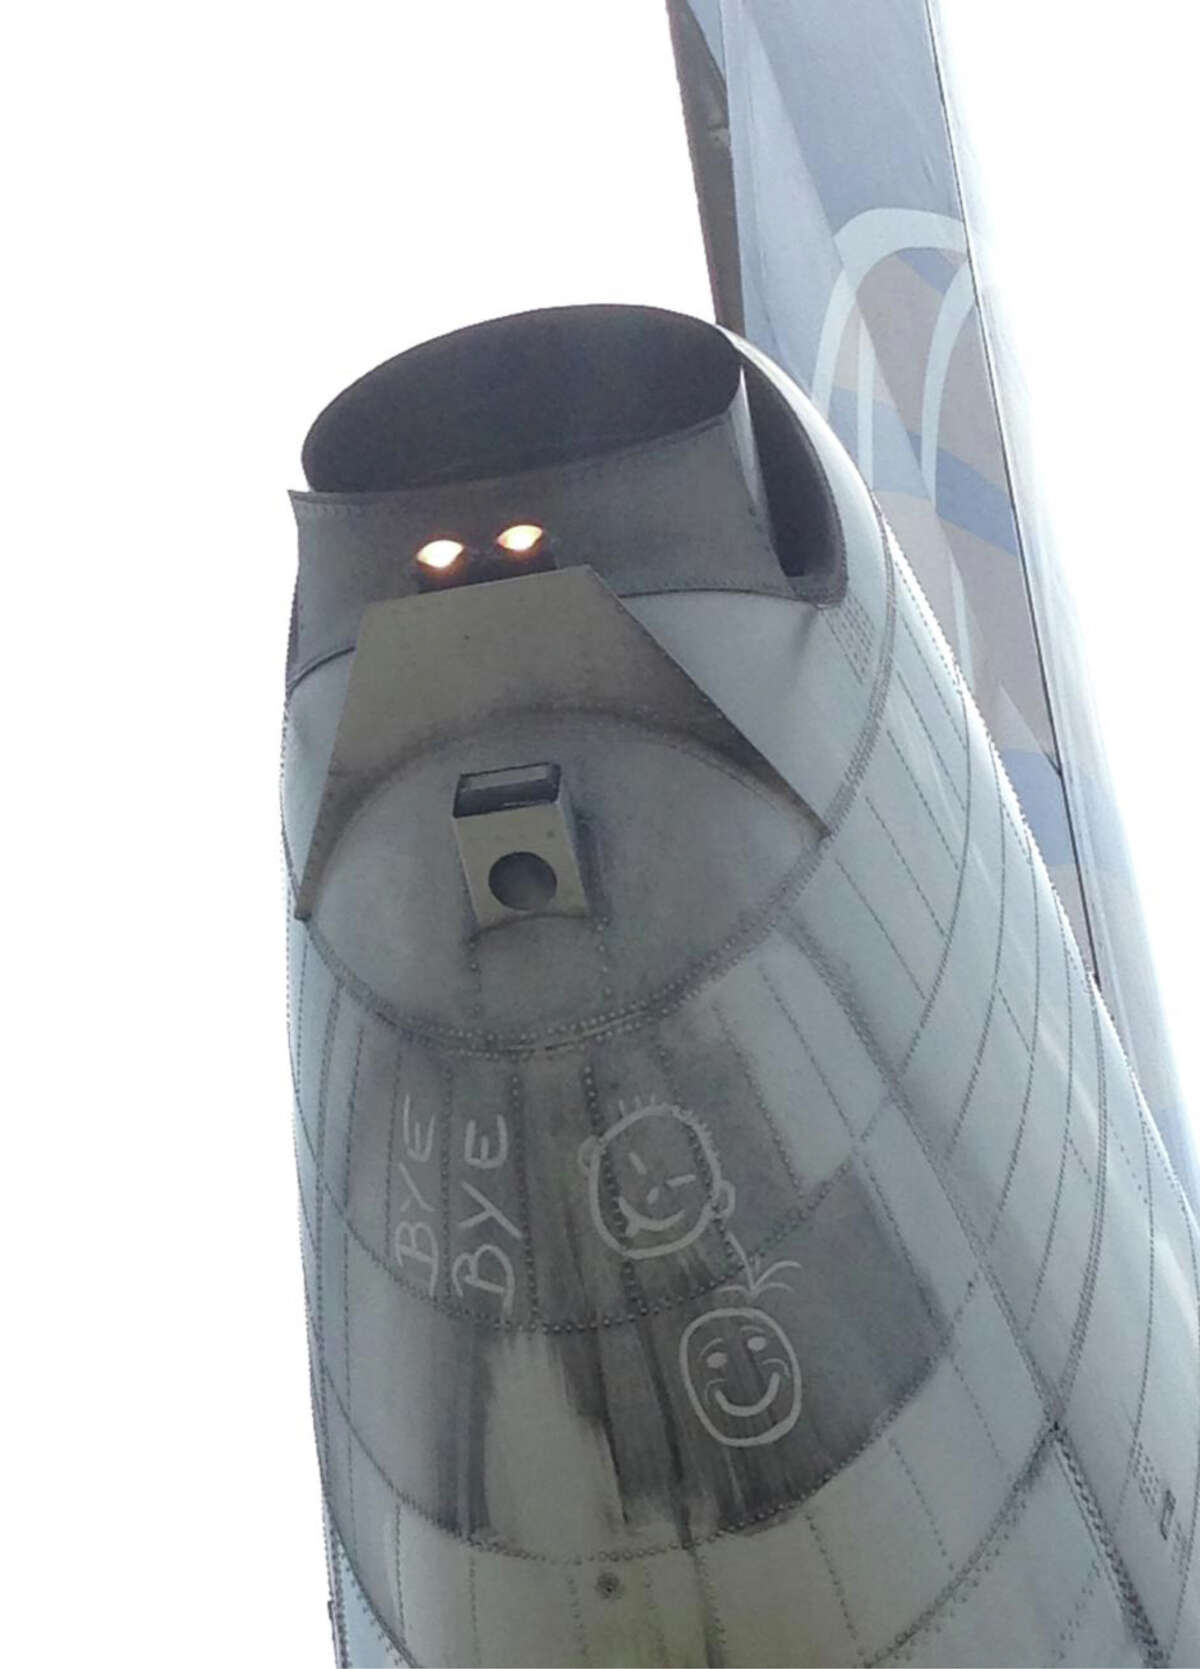 A crew member's photo provided with the complaint shows the writing and images on the United Airlines jet at SFO.